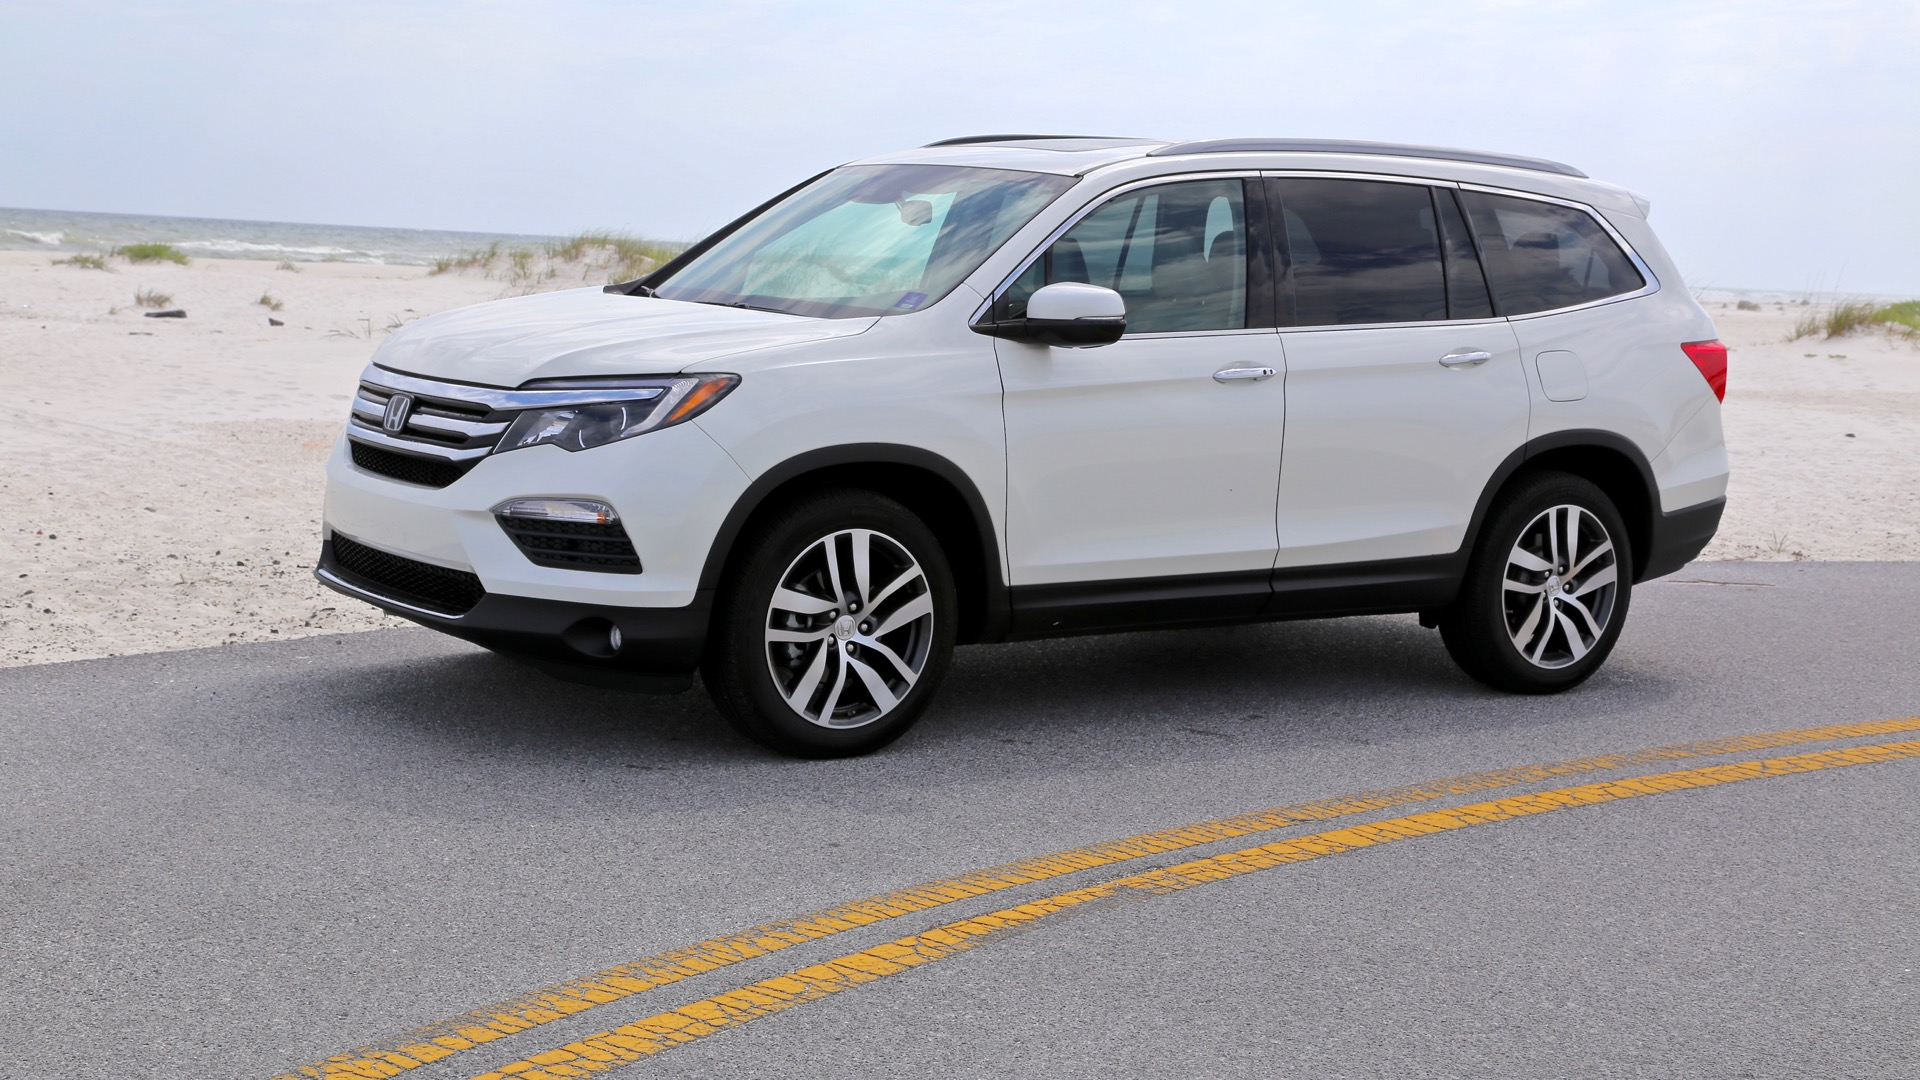 New Honda Pilot >> 2016 Honda Pilot Touring long-term road test: what we'd change